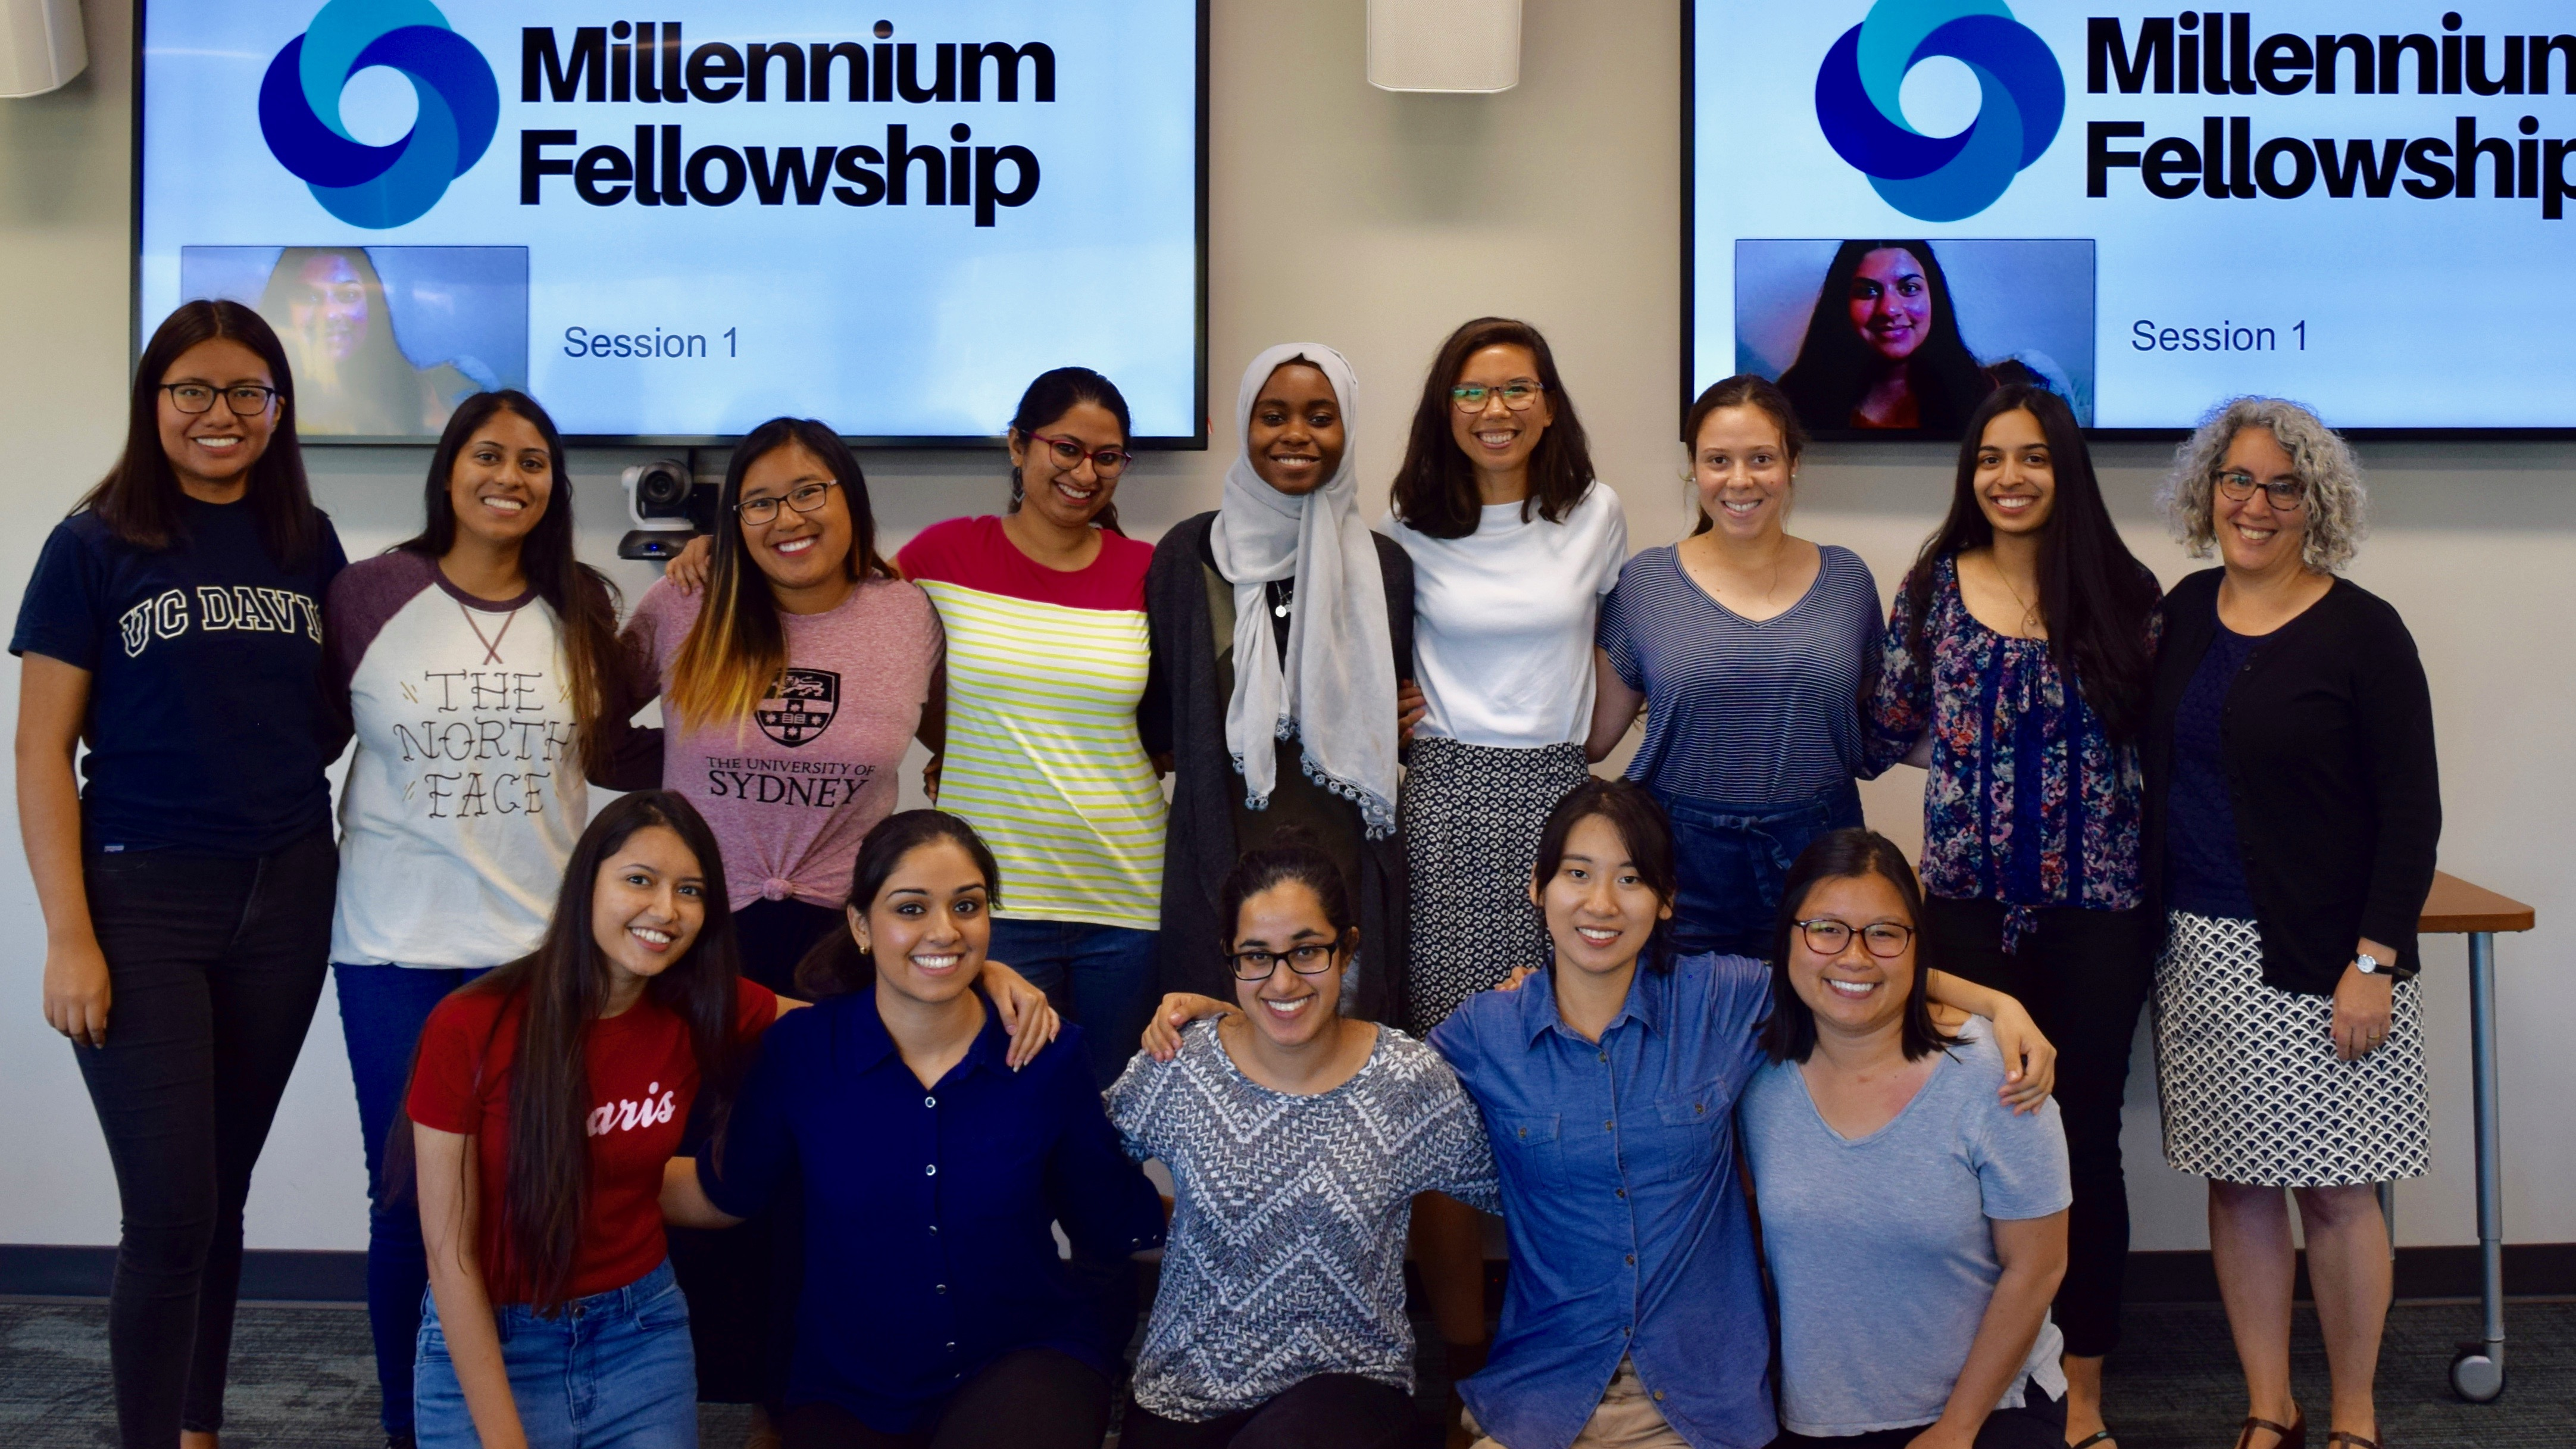 Millennium Fellows group photo